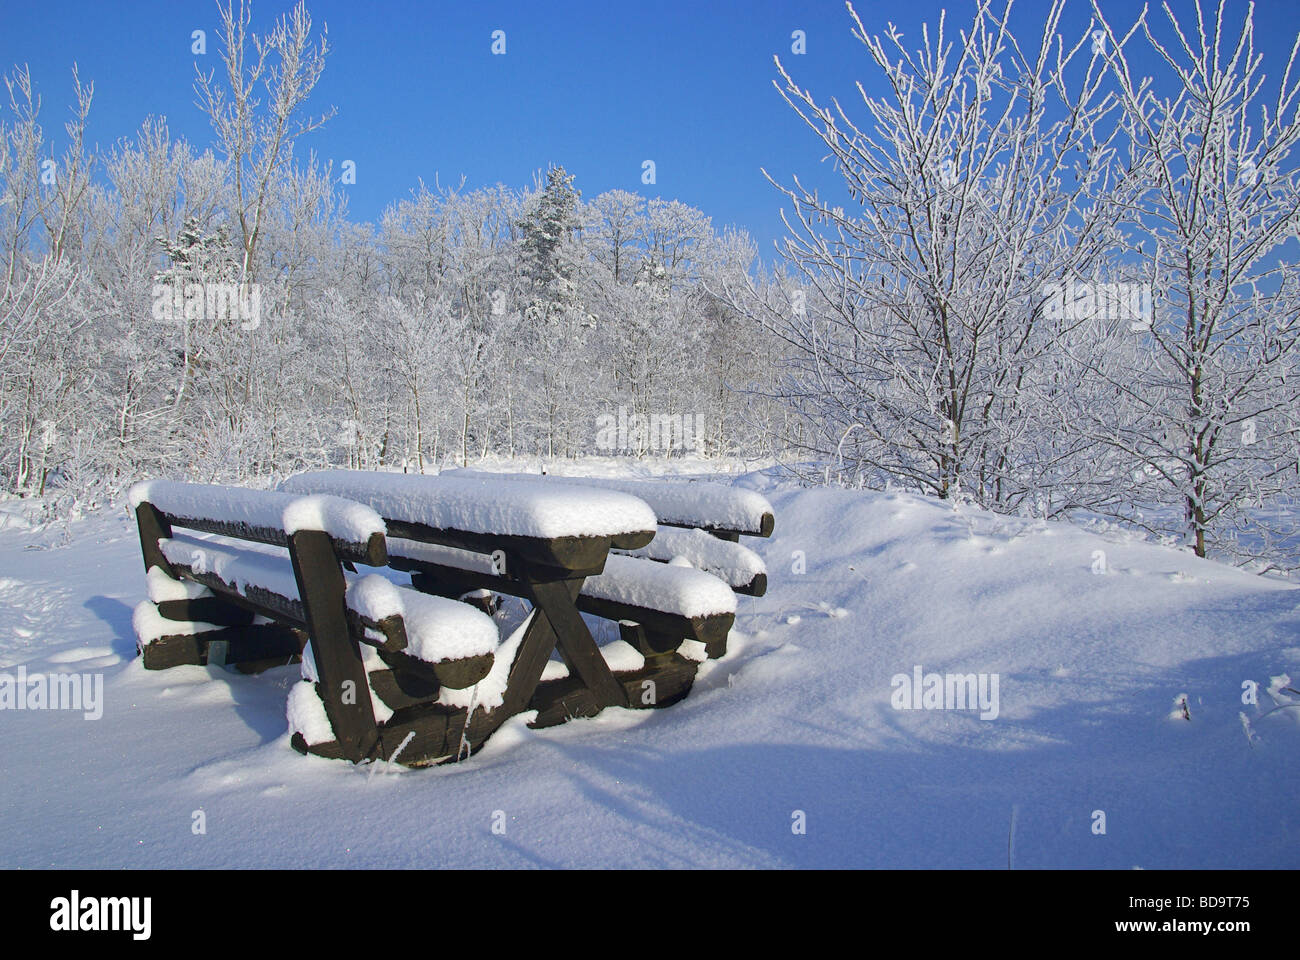 Wald im Winter forest in winter 03 - Stock Image